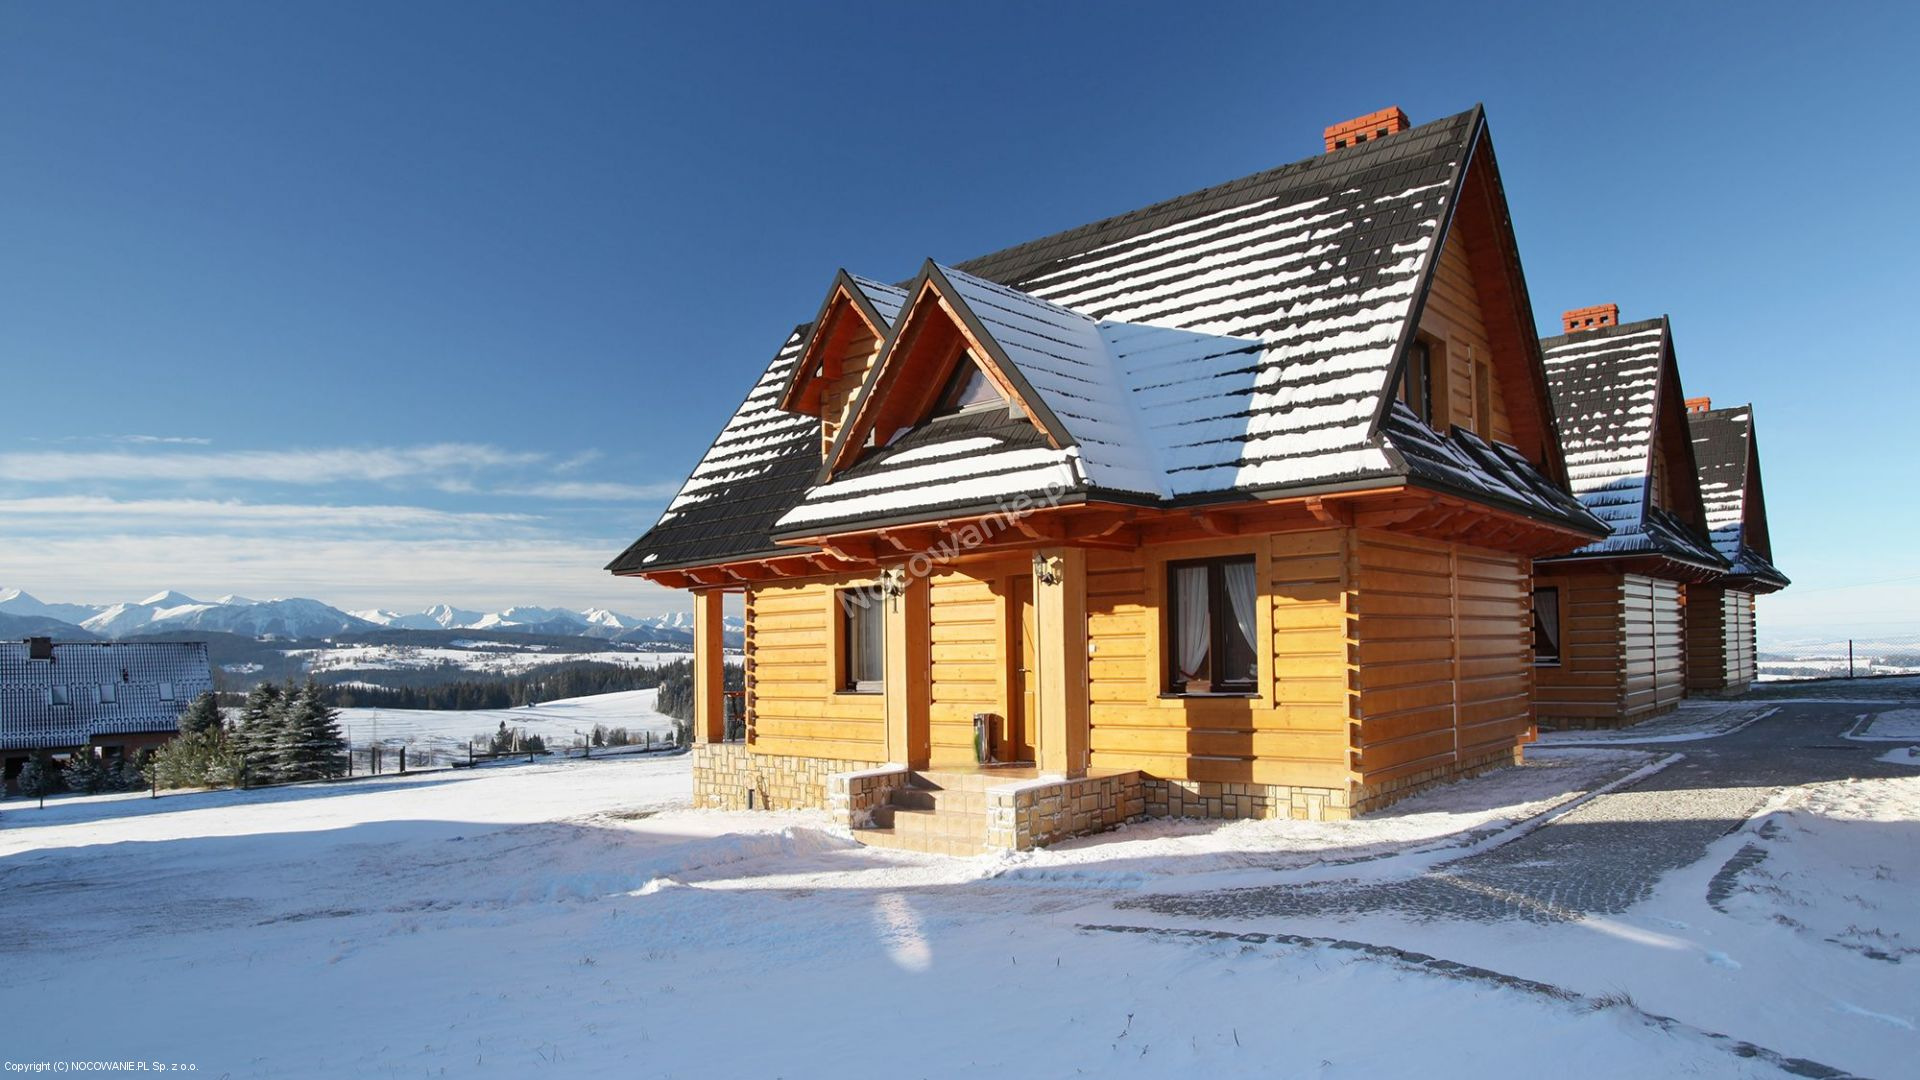 Cottages U Jasia Zakopane Cottages U Jasia W Zakopanem